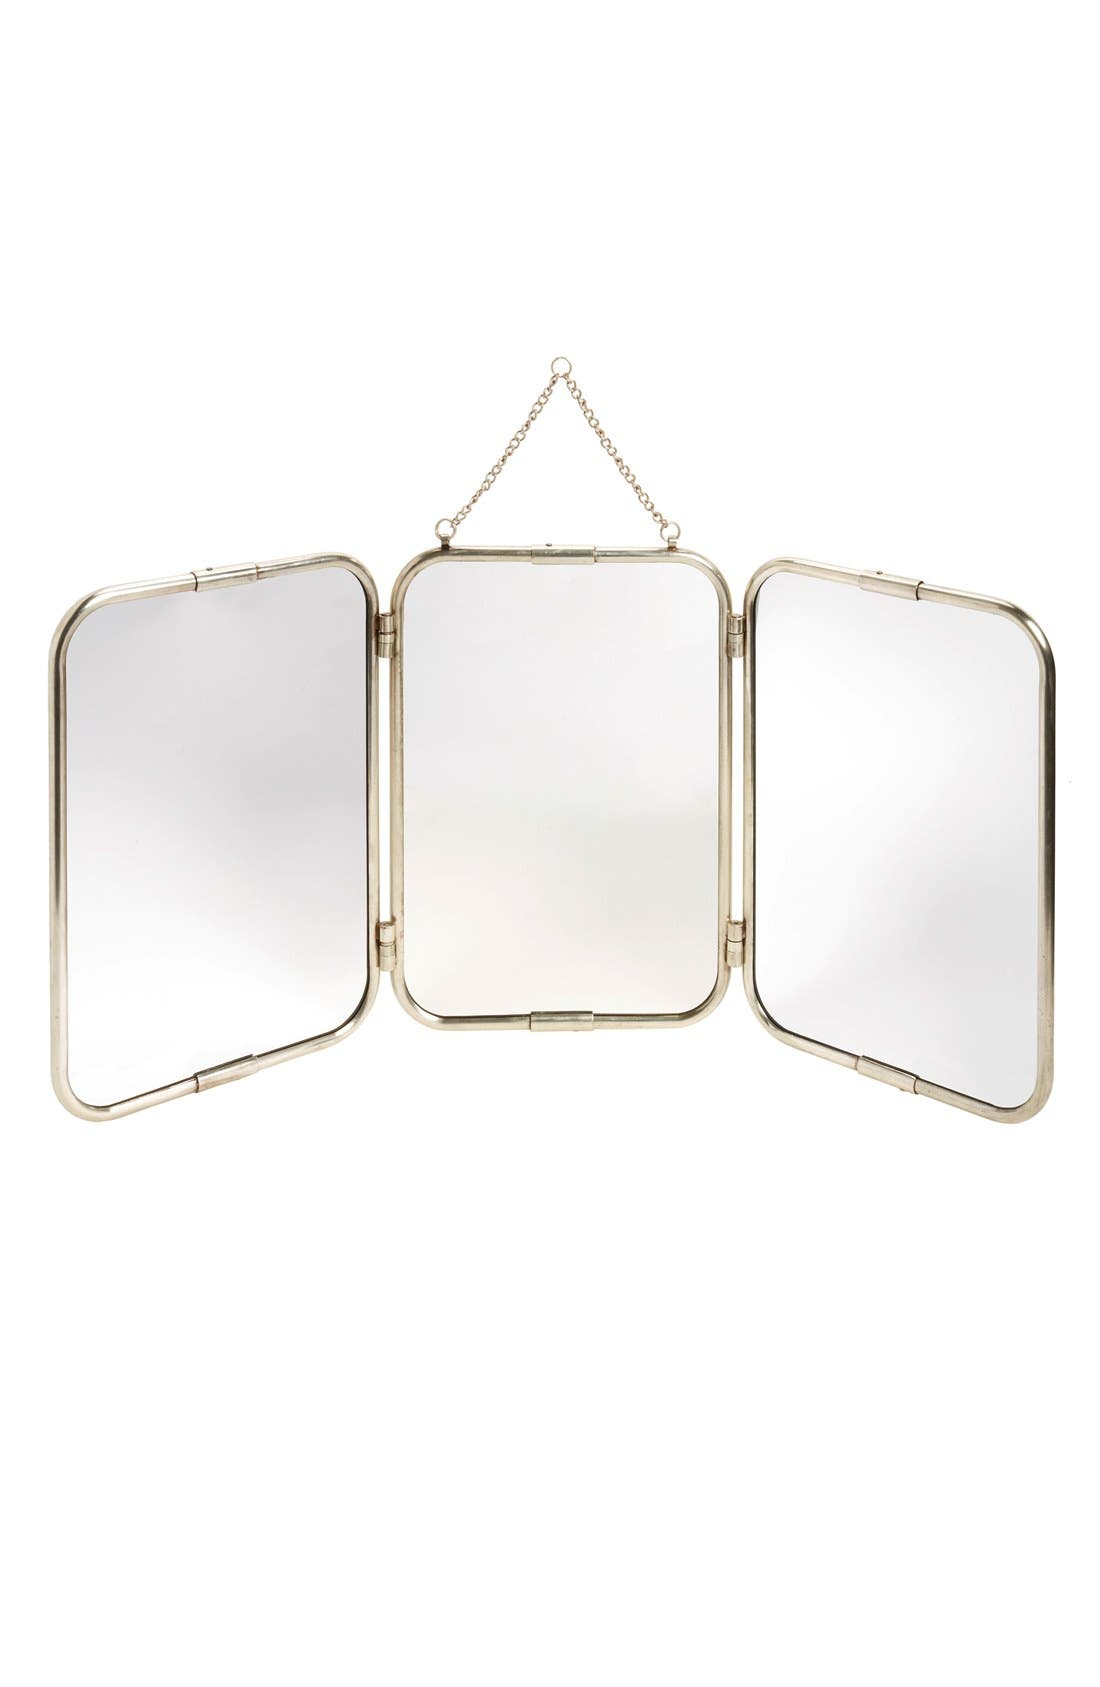 Alternate Image 1 Selected - Creative Co-Op 3-Panel Mirror